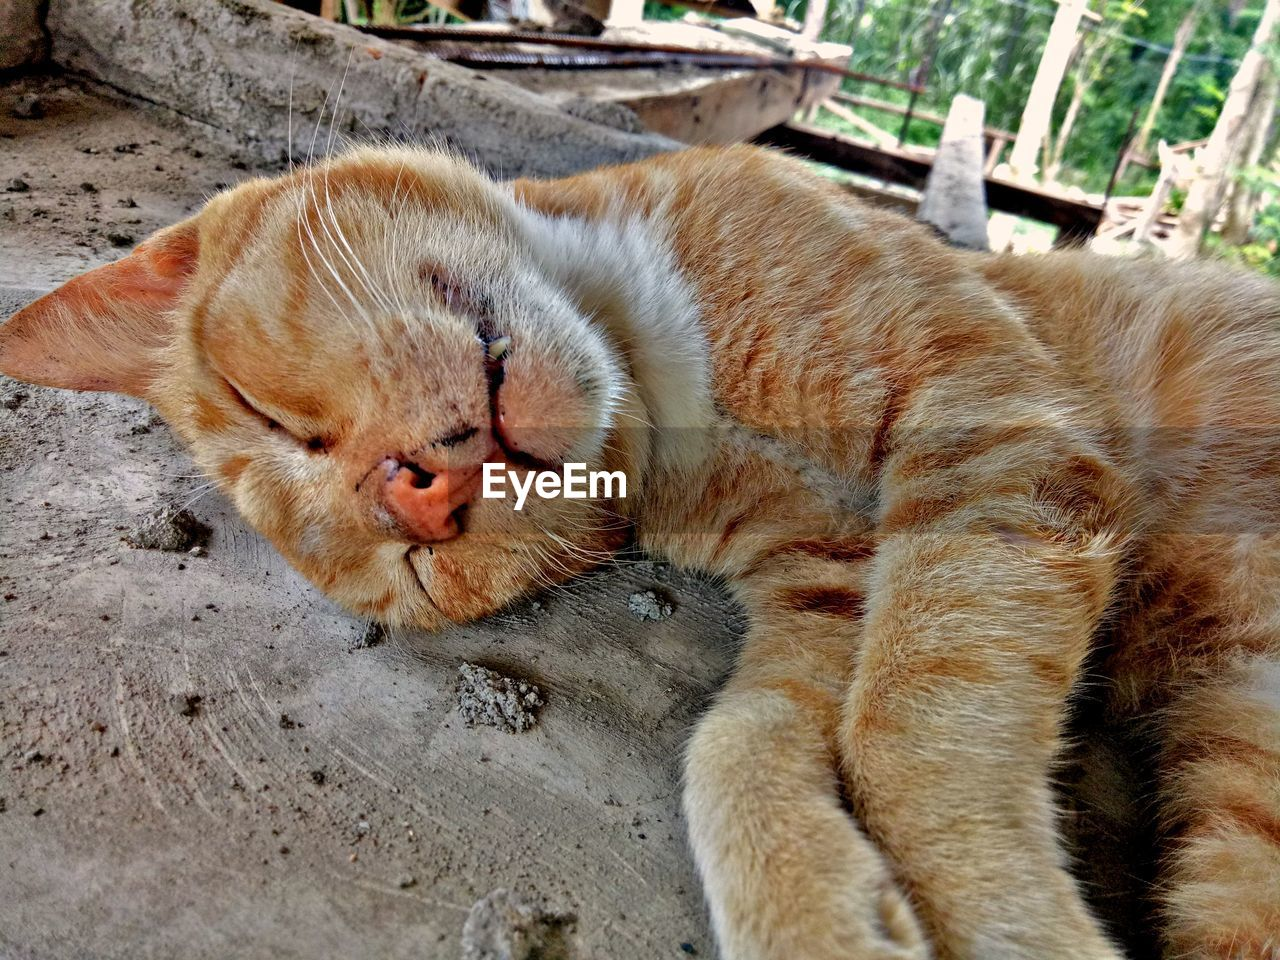 cat, feline, animal themes, relaxation, mammal, animal, domestic cat, one animal, pets, domestic, vertebrate, domestic animals, eyes closed, lying down, sleeping, no people, resting, close-up, day, whisker, ginger cat, animal head, mouth open